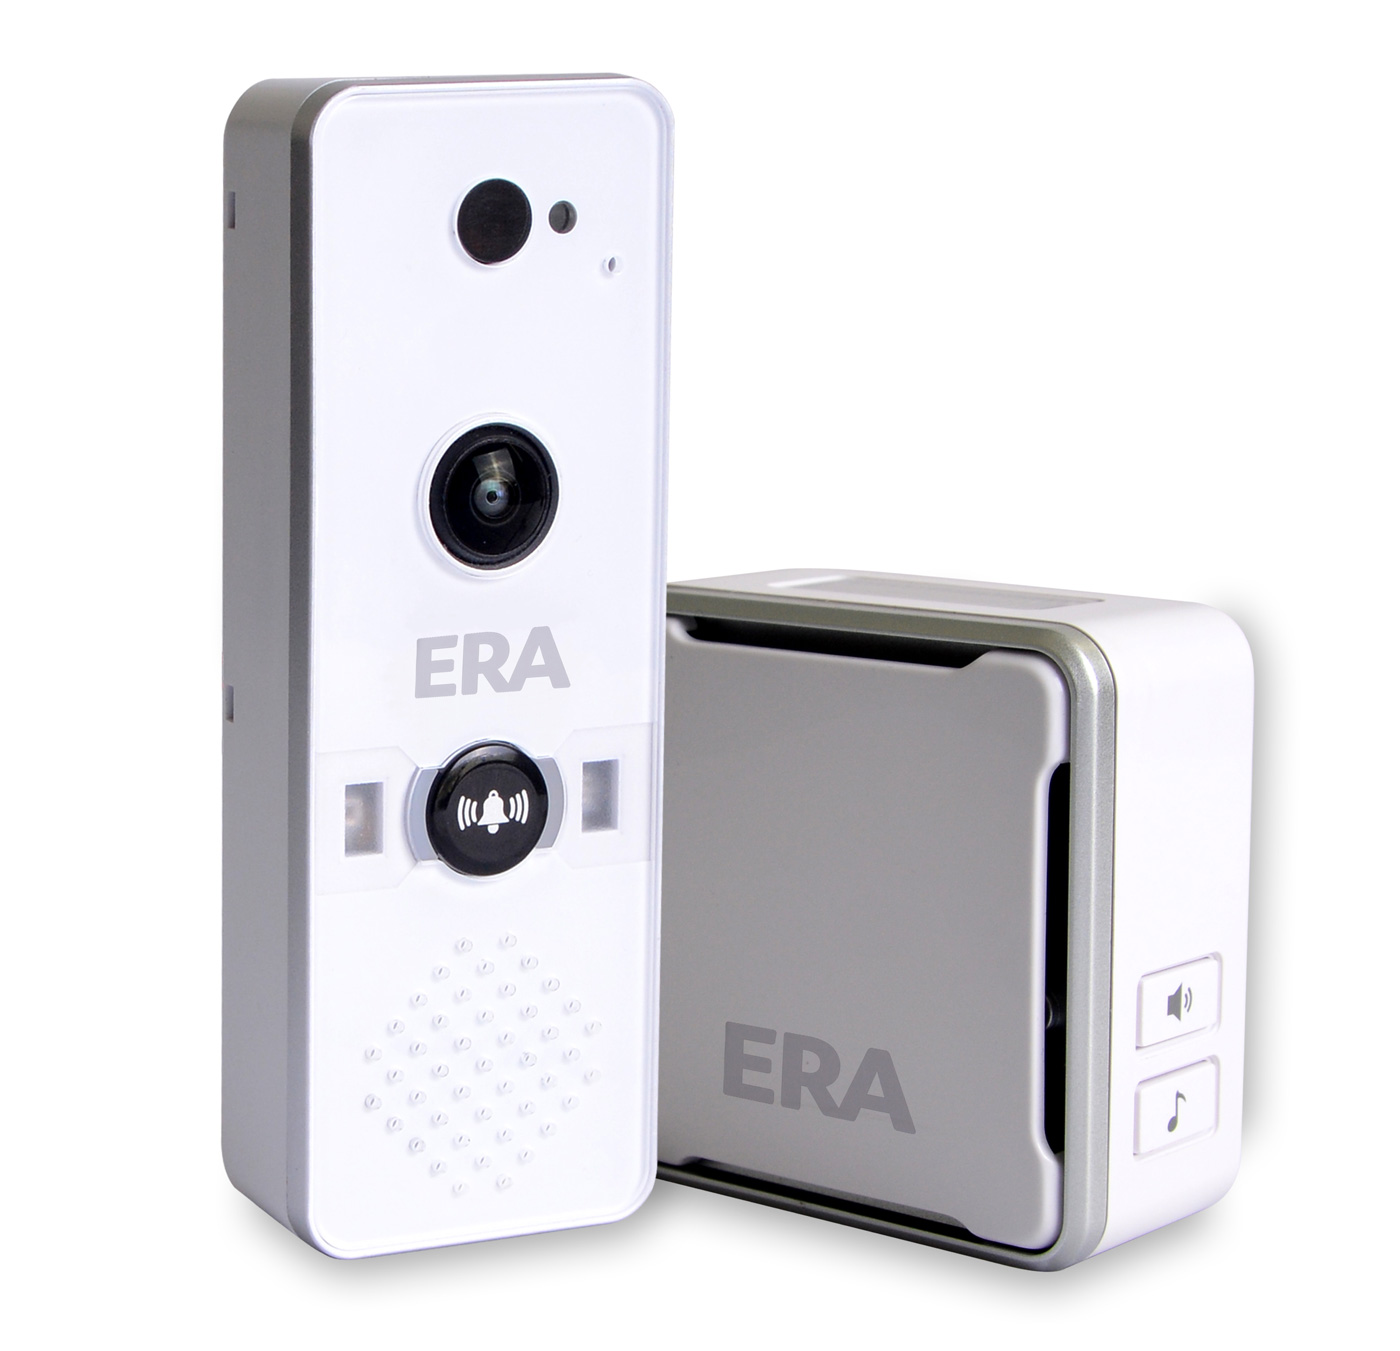 DoorCam Smart Home WiFi Video Doorbell